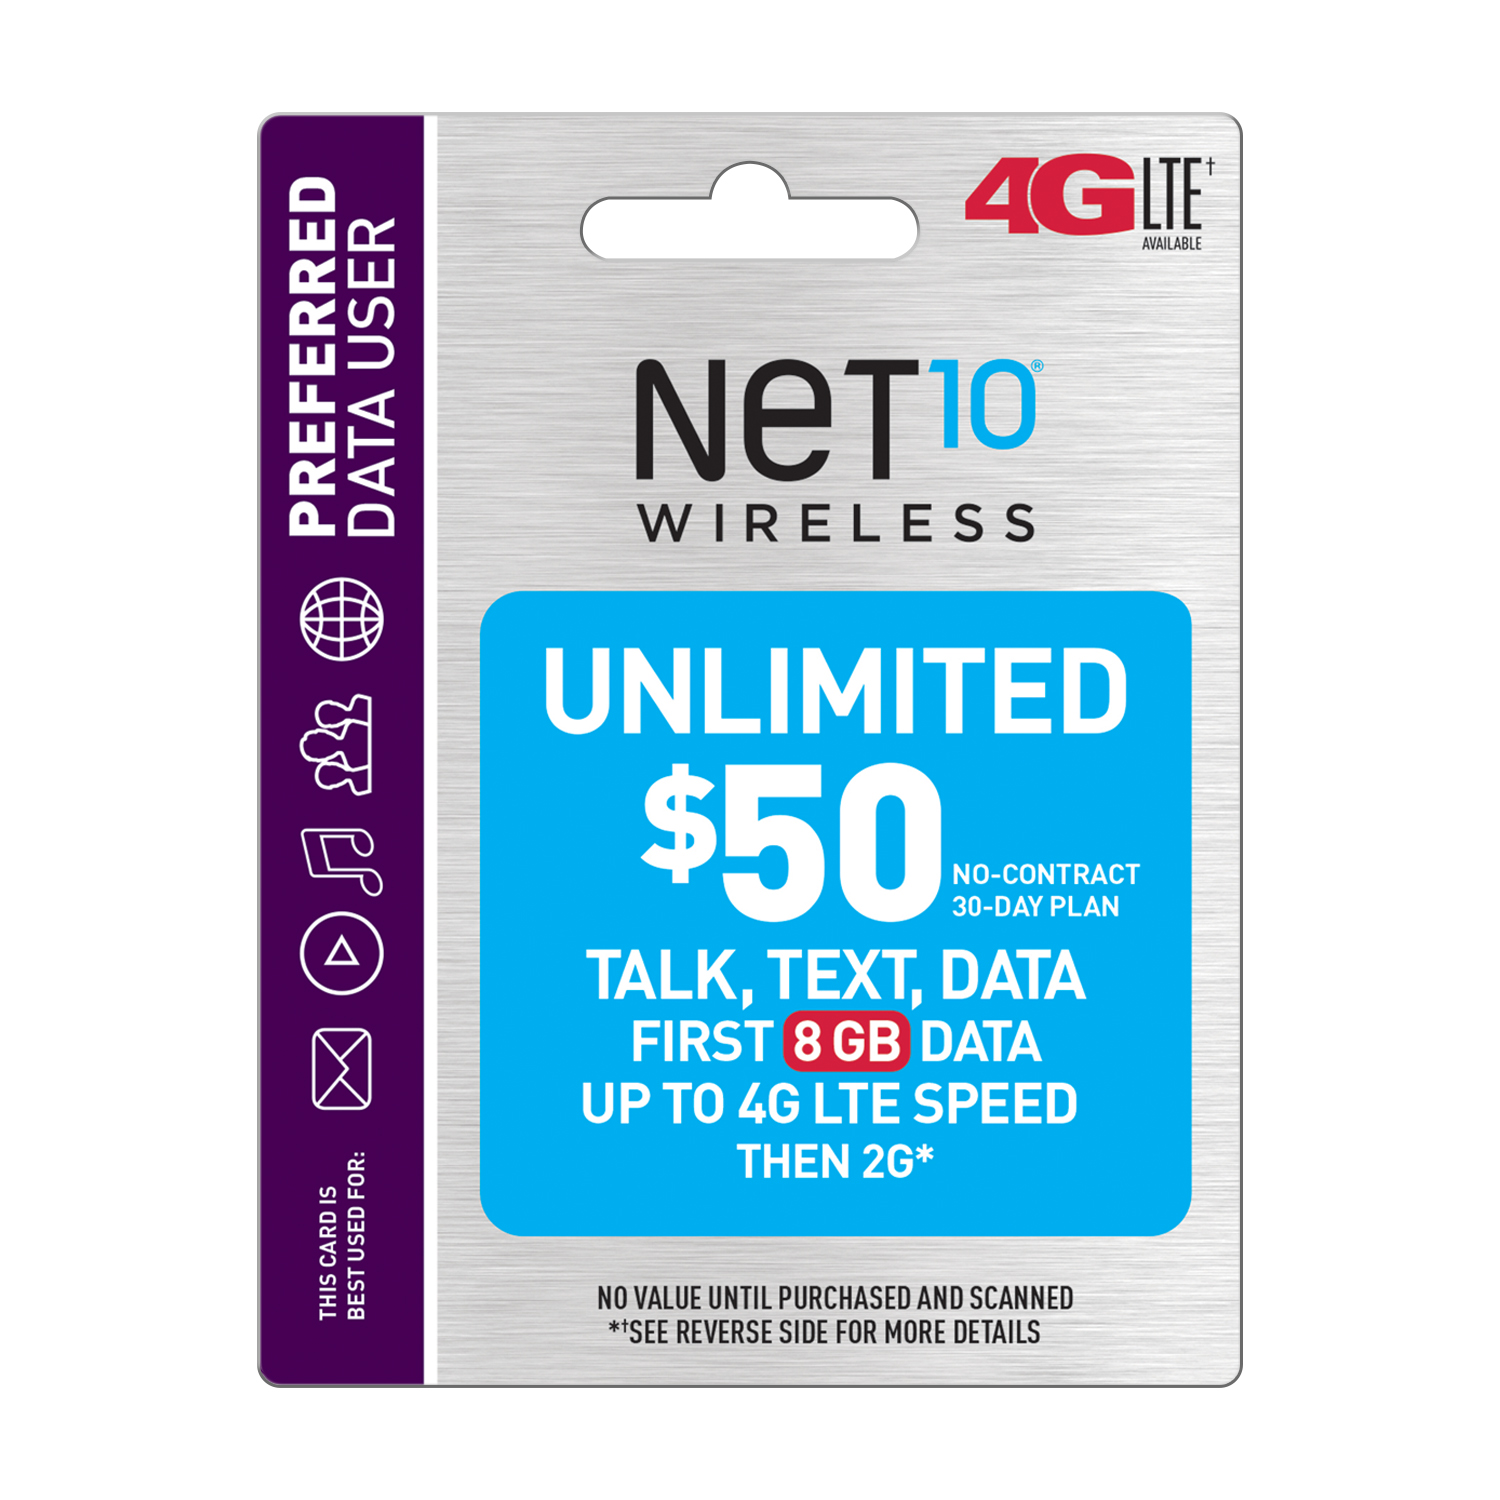 Net10 $50 Unlimited 30 Day Plan (8GB of data at high speed, then 2G*) (Email Delivery)